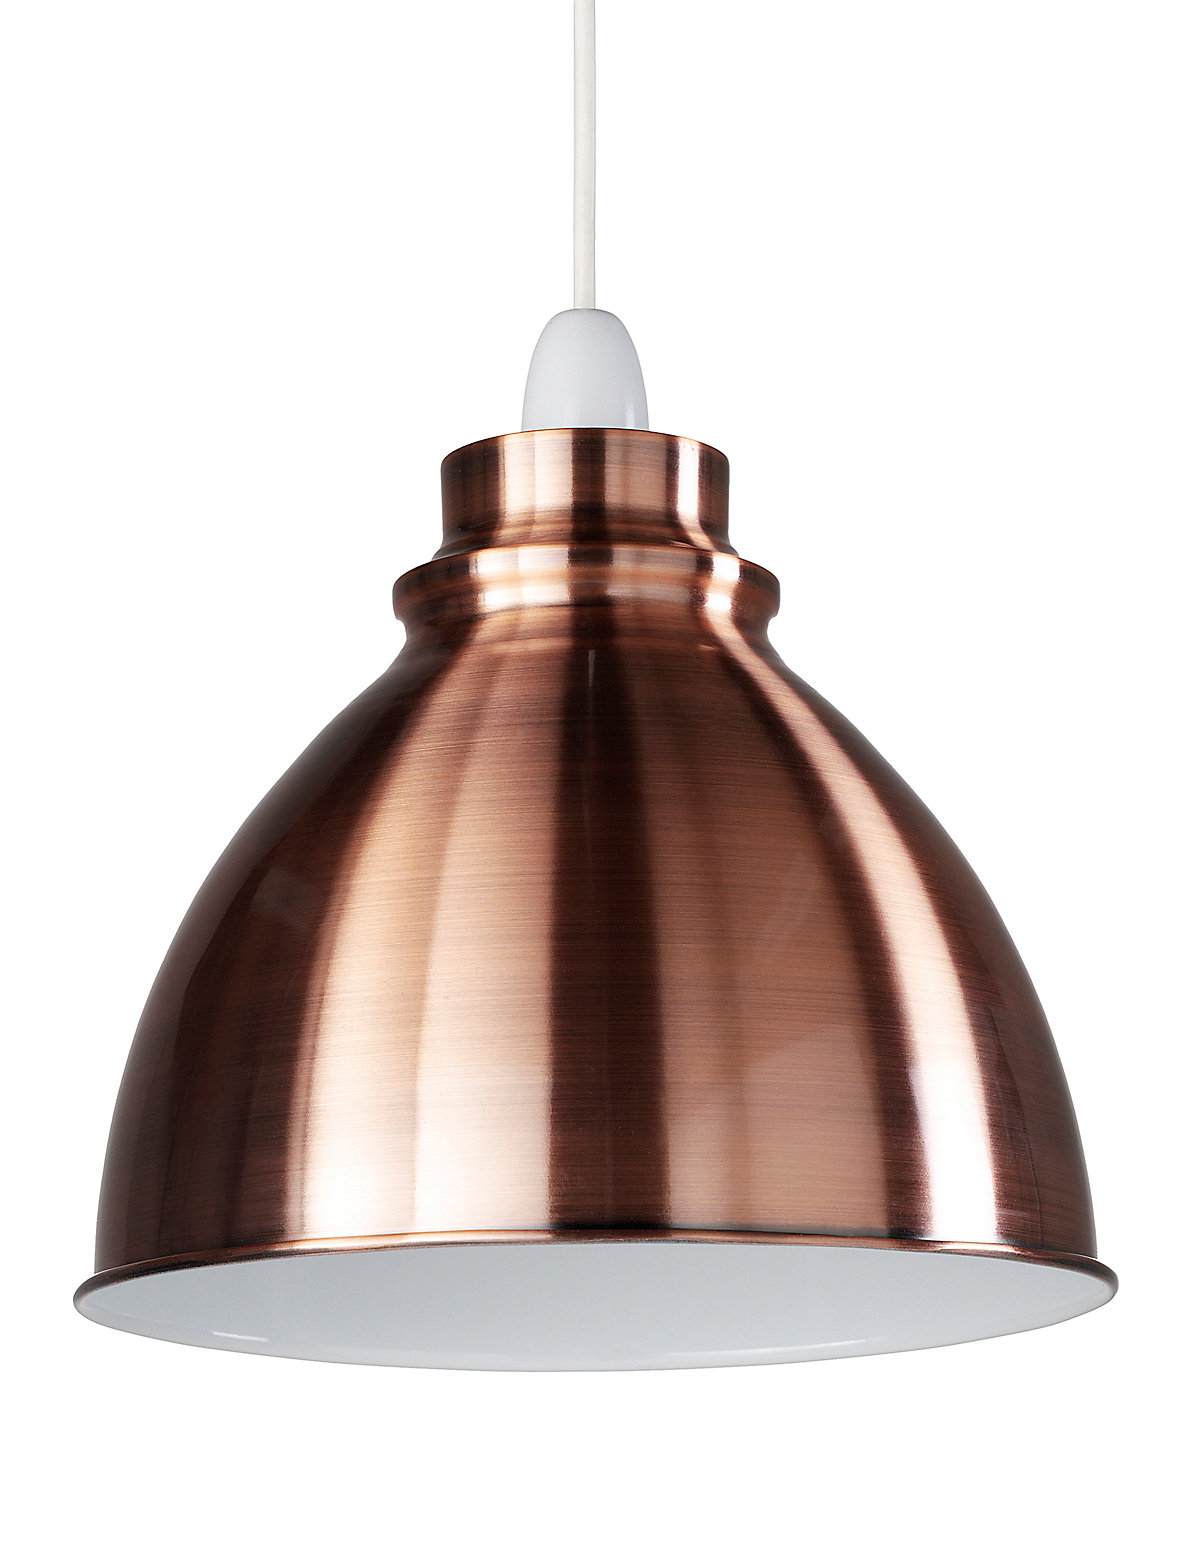 buy cheap retro ceiling lamp compare lighting prices for best uk